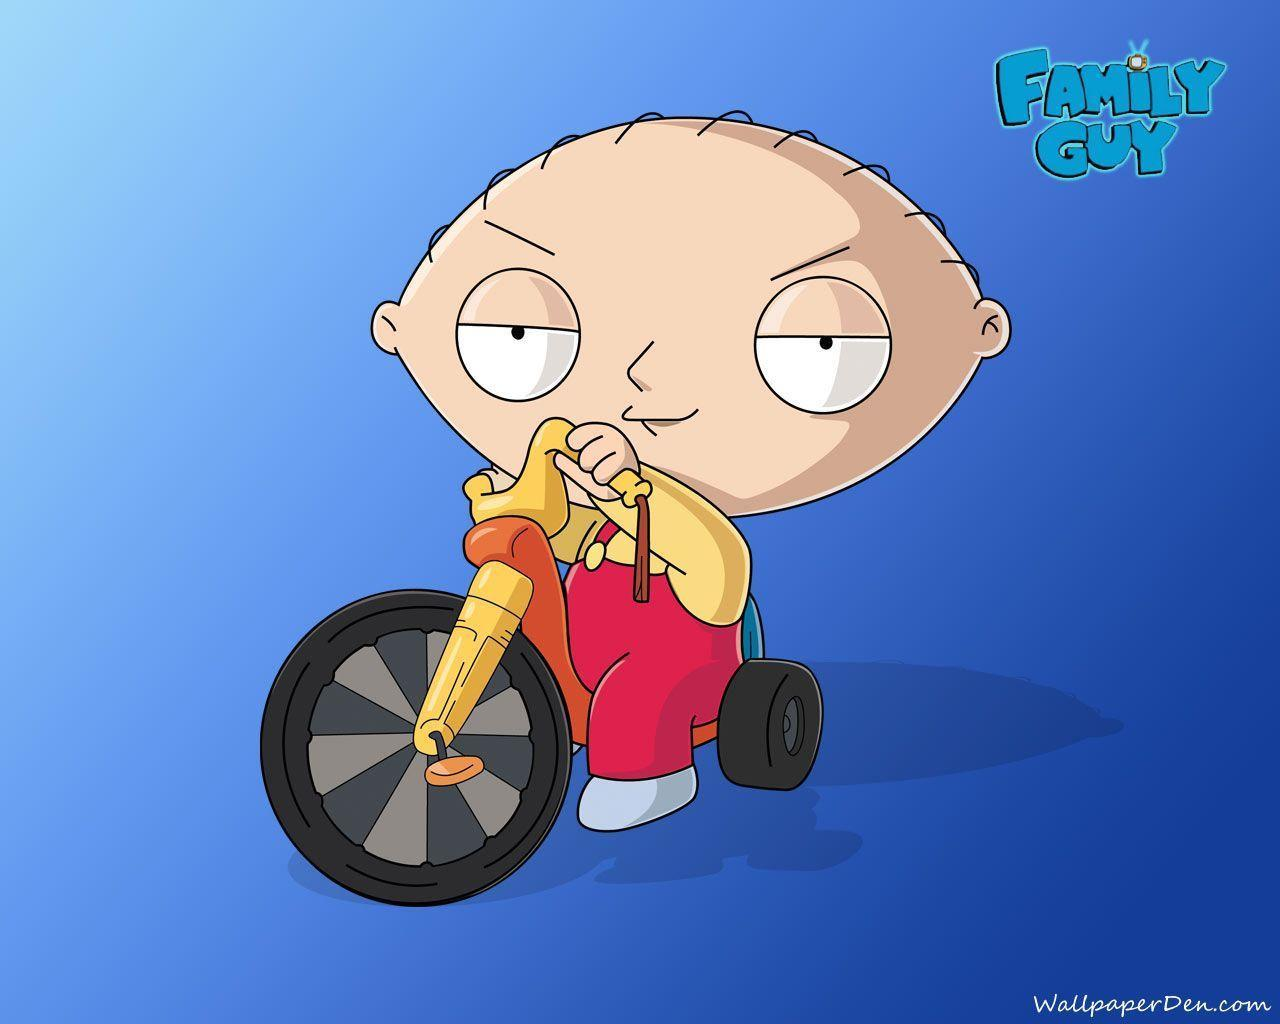 Stewie Griffin Wallpaper Hd Family Guy Wallpapers For Computer Wallpaper Cave